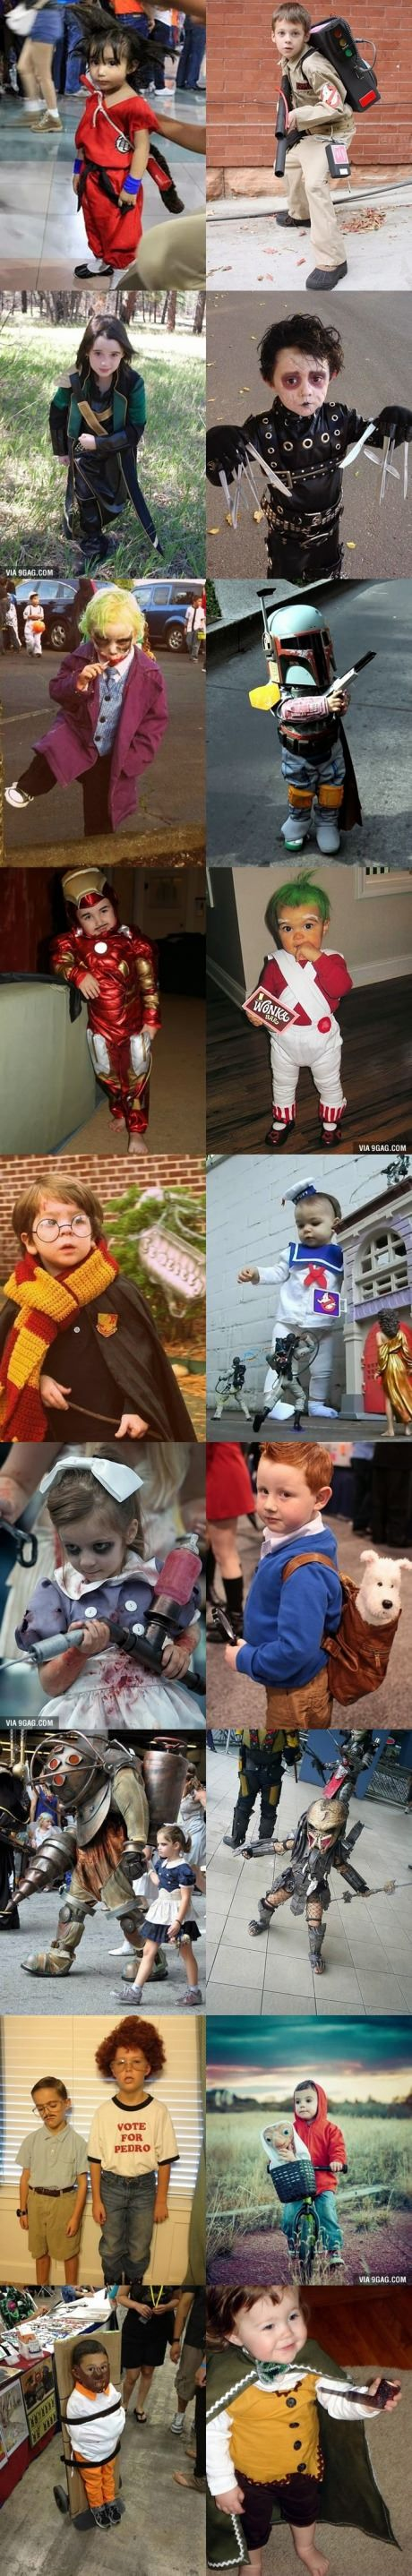 Parenting done right: The Compilation